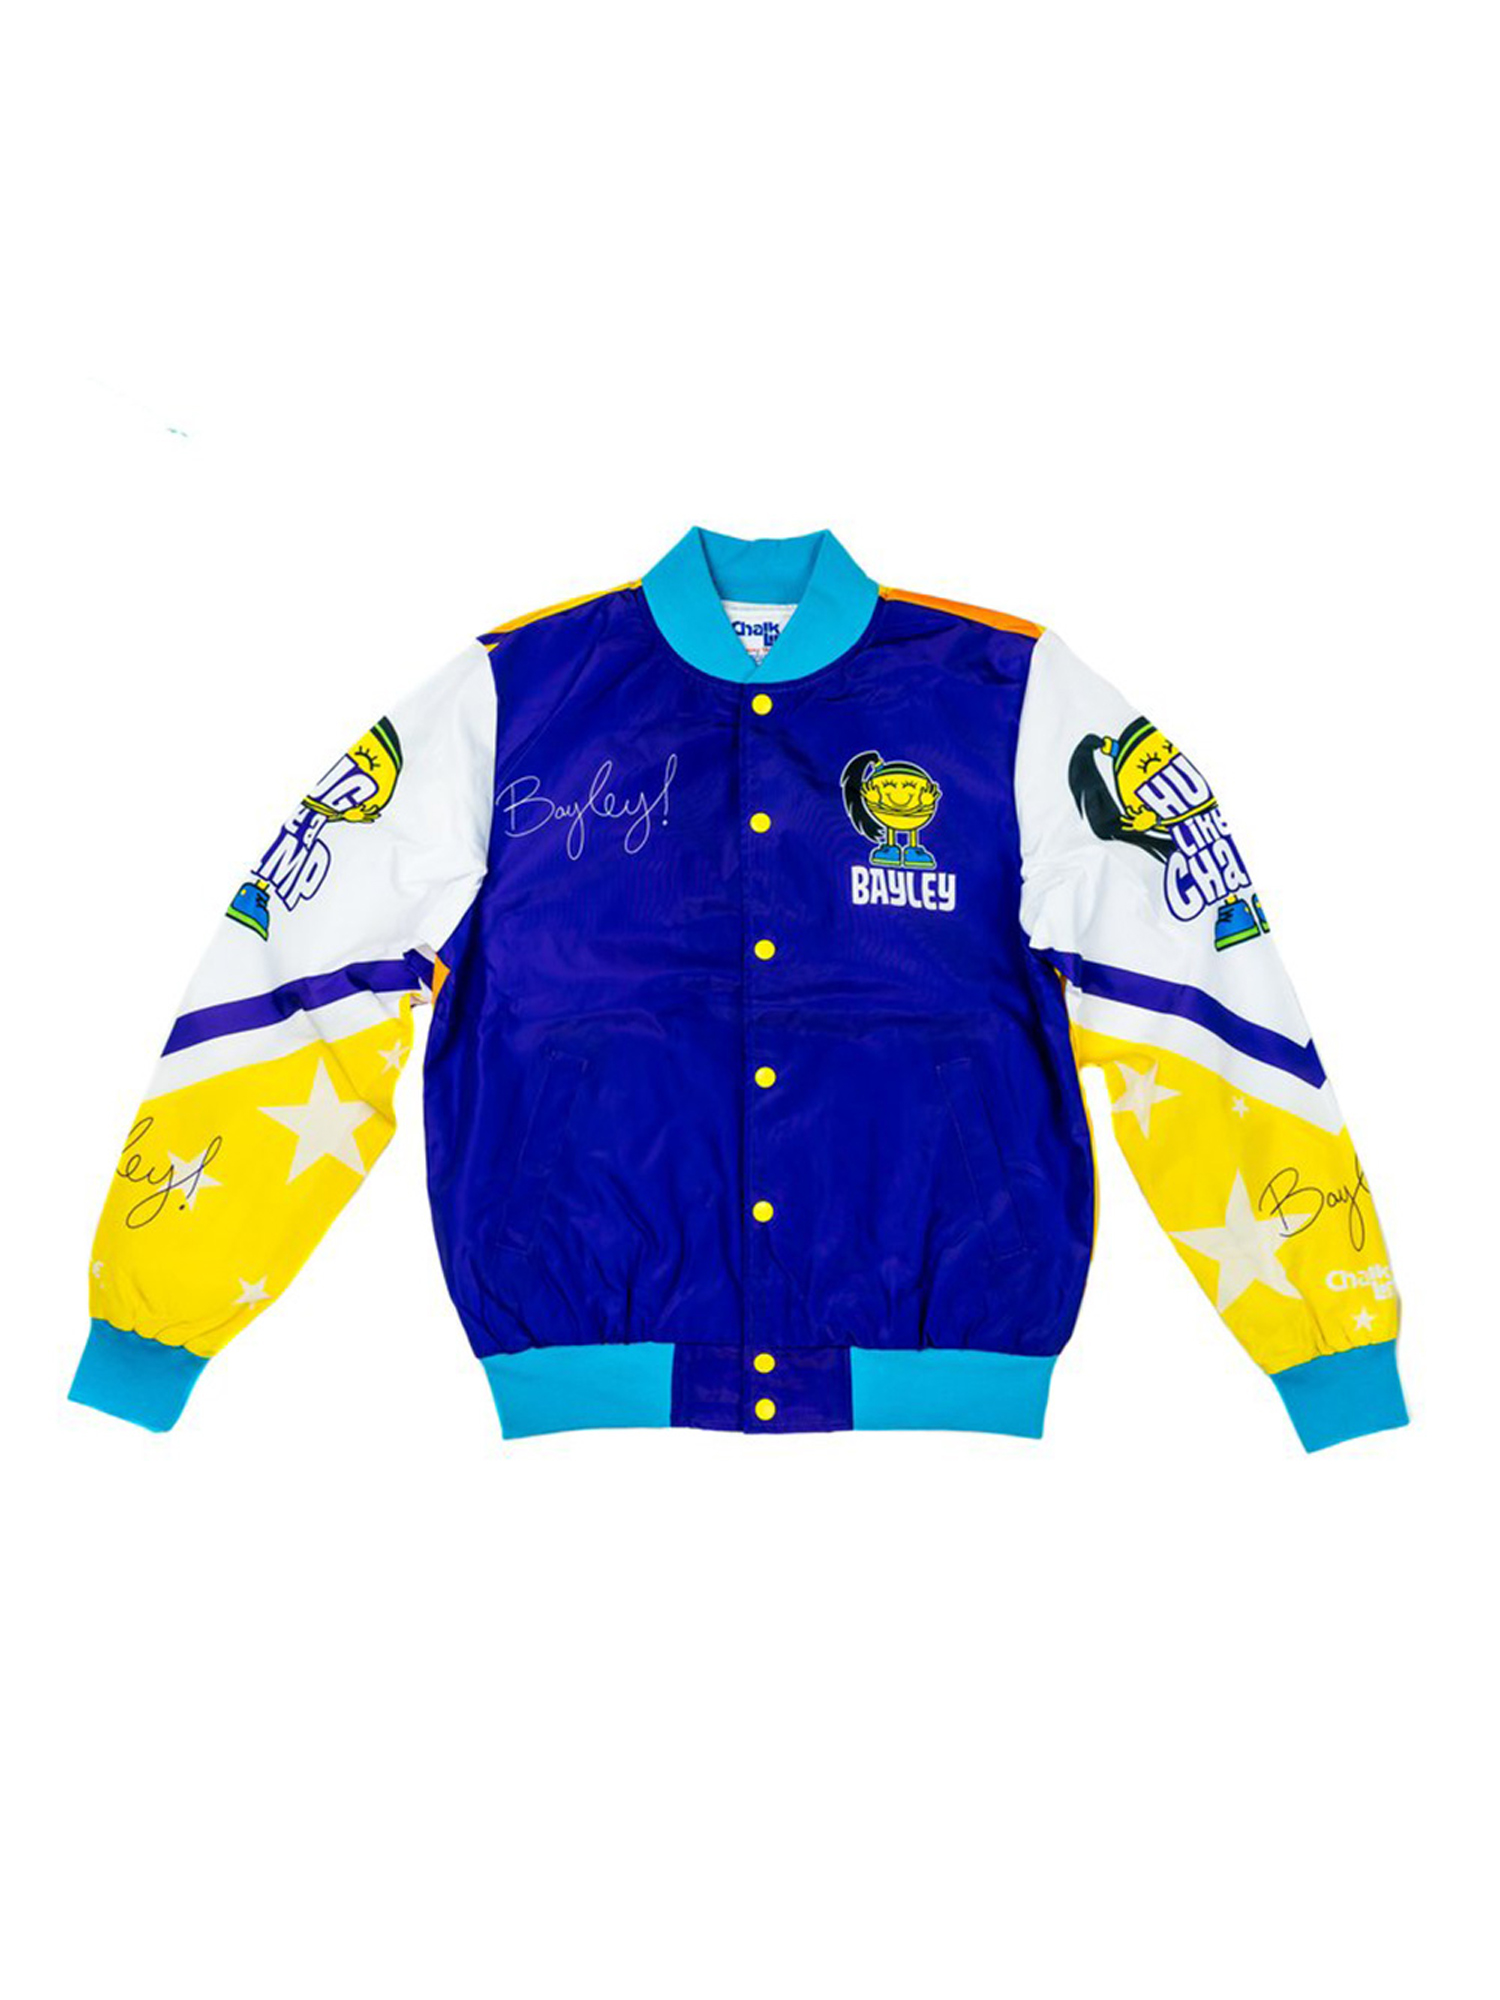 Official WWE Authentic Bayley Vintage Fanimation Jacket Blue Yellow White by